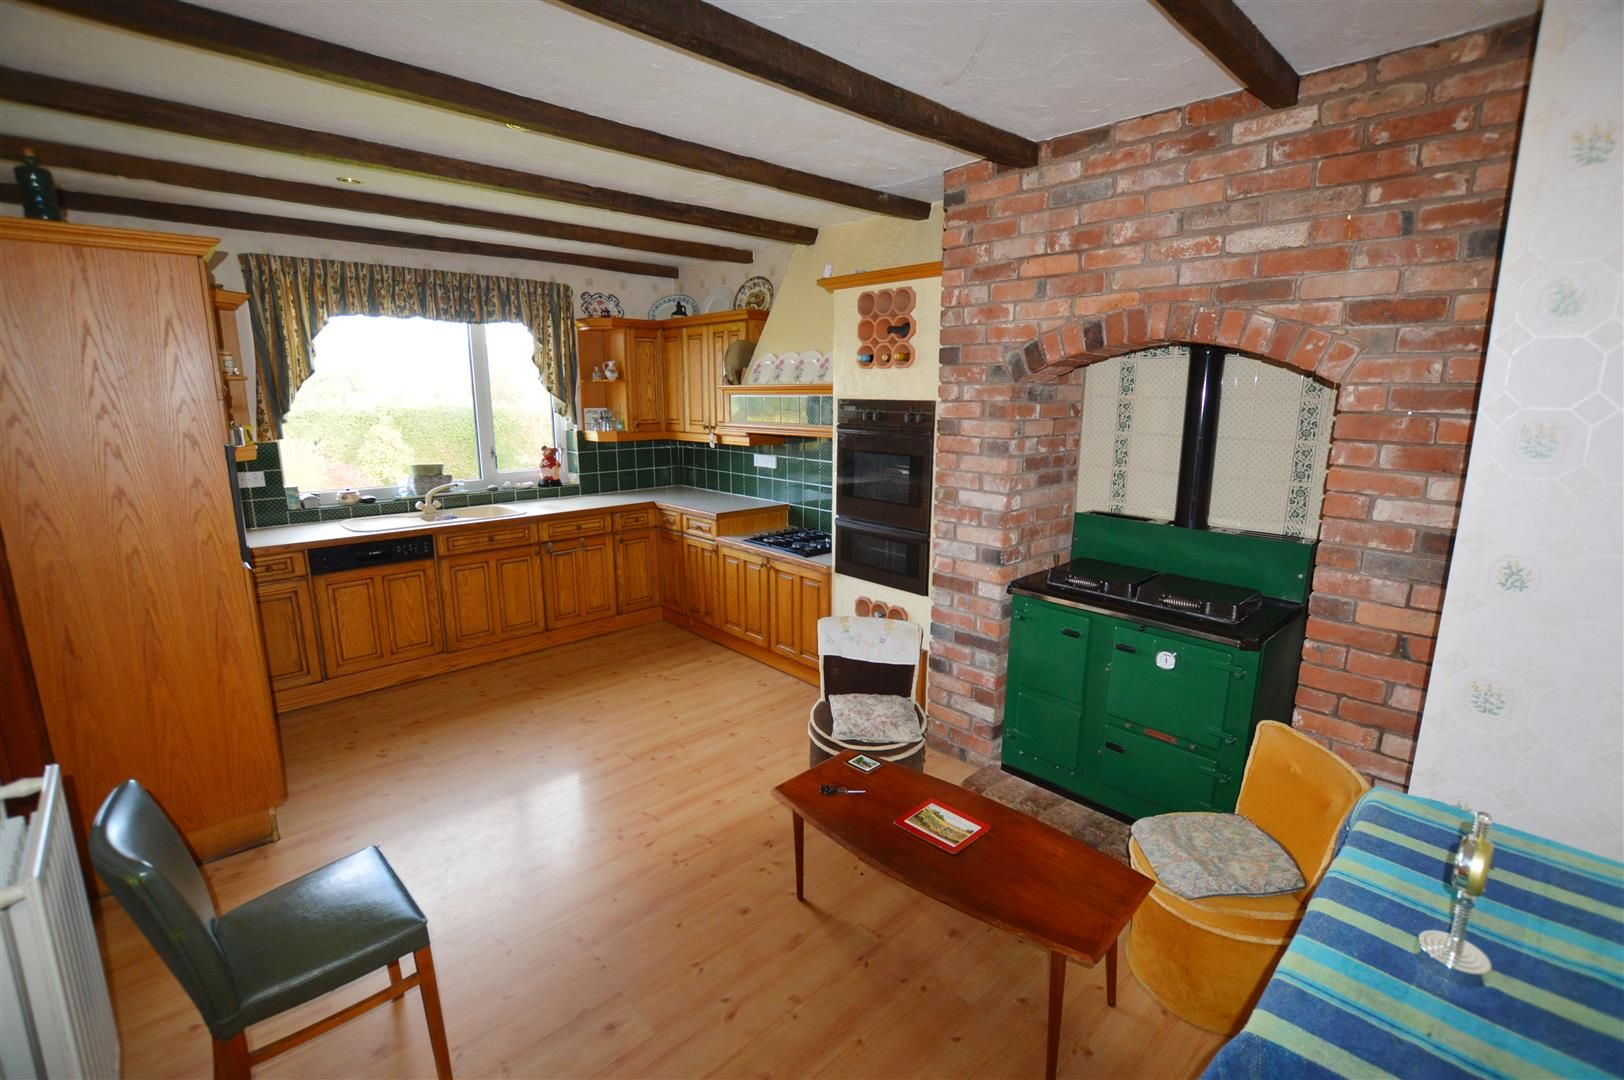 3 bed detached-bungalow for sale in Llandrindod Wells  - Property Image 2